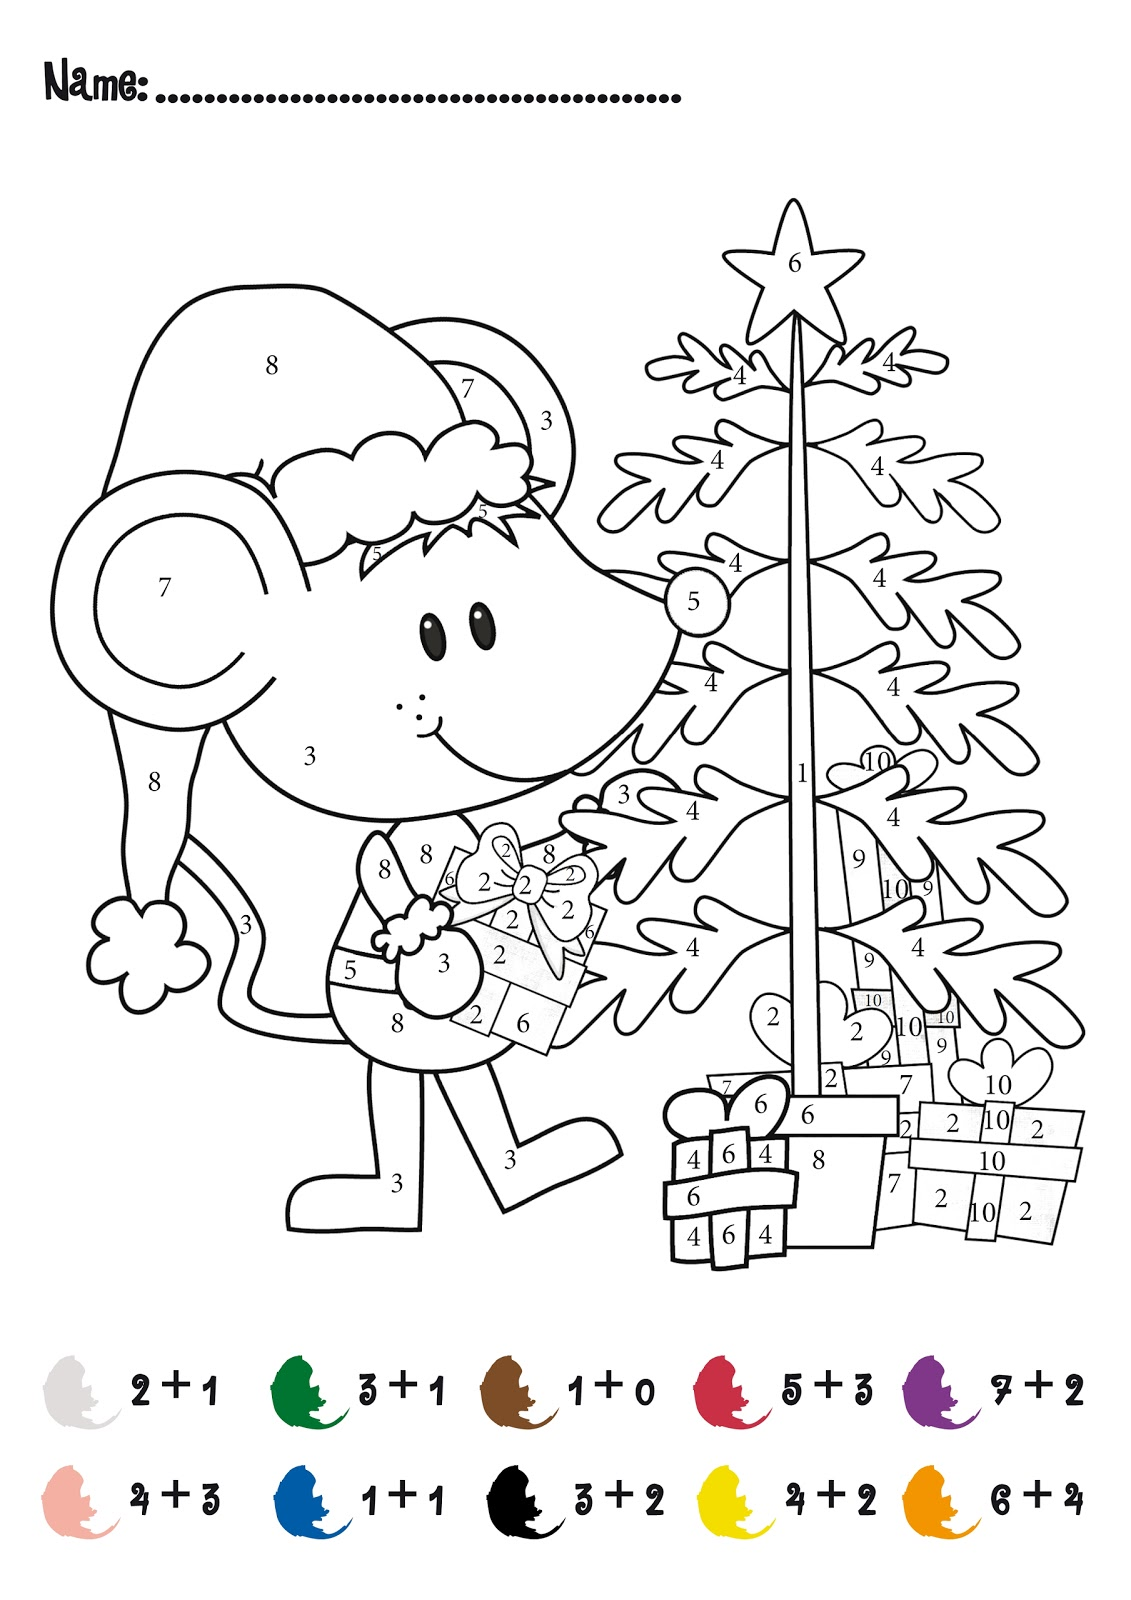 Printable Christmas Games for Kids